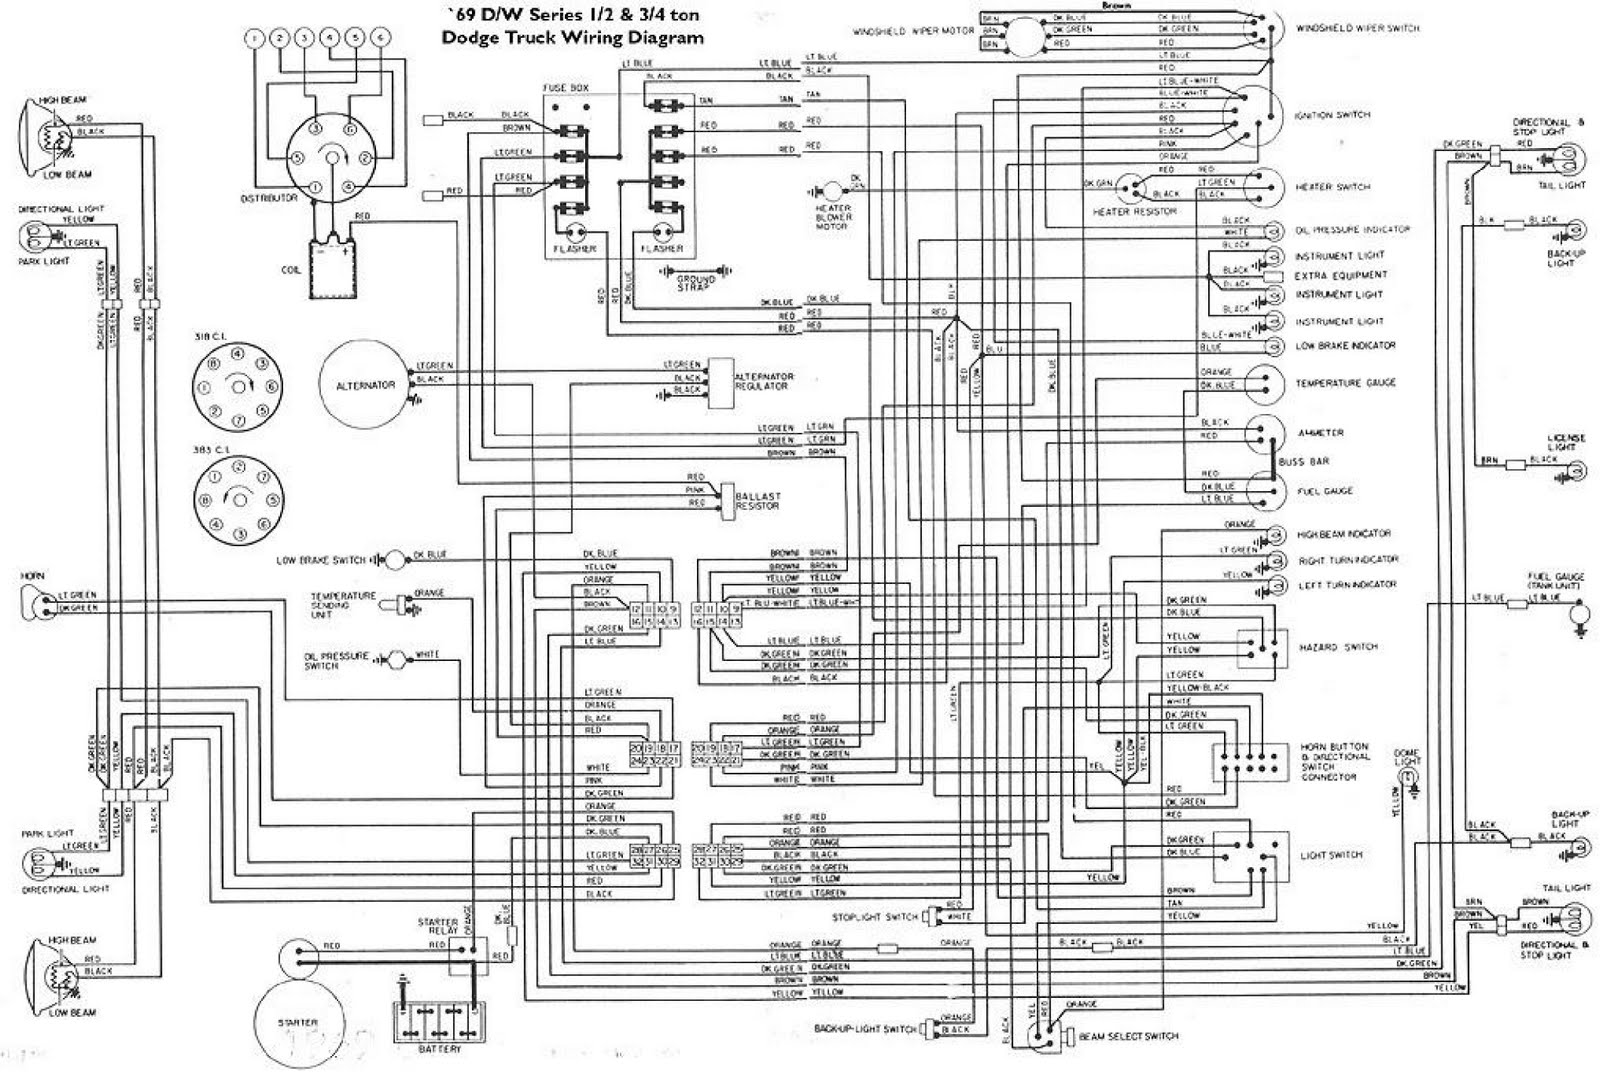 1989 Dodge D100 Wiring Diagram - Wiring Diagrams •